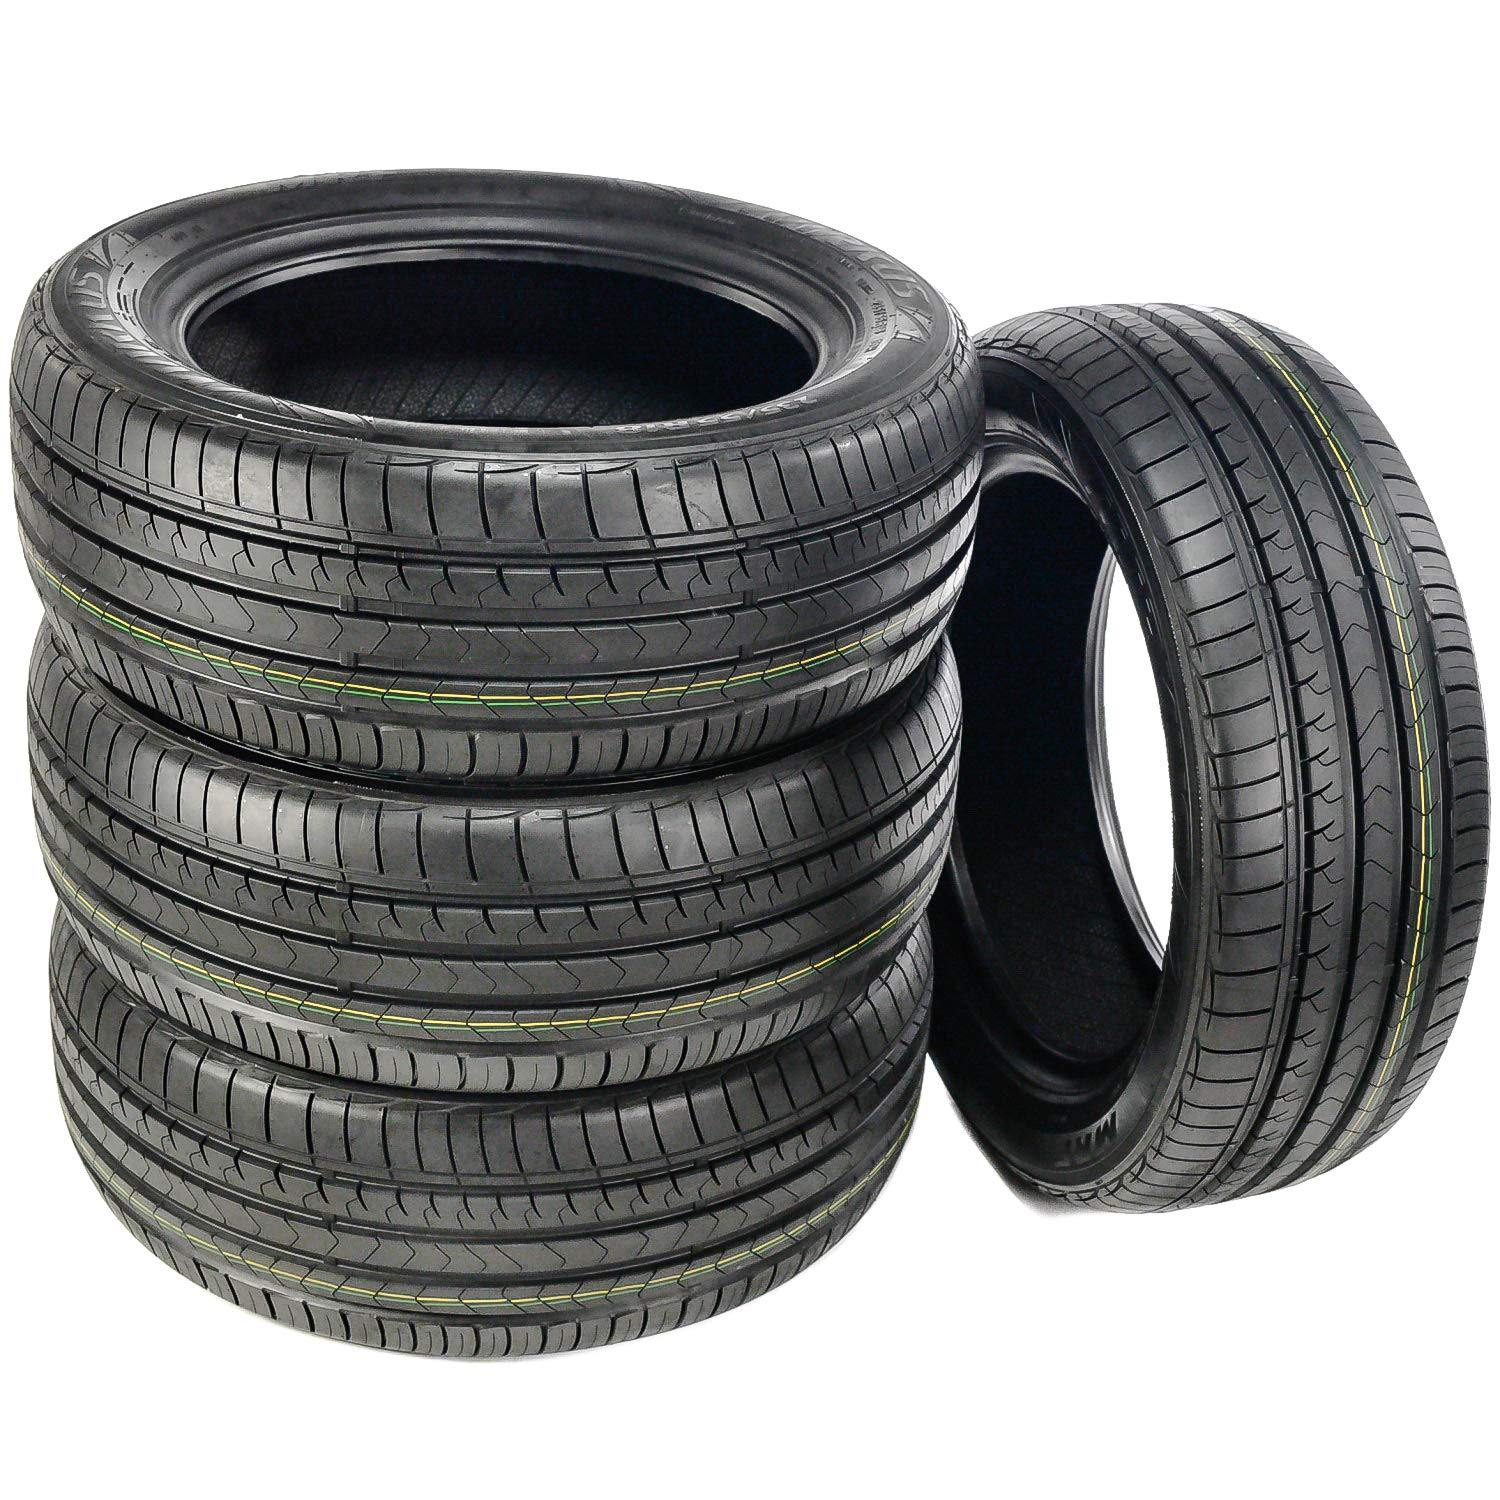 Set of 4 (FOUR) MRF Markus Touring All Season Radial Tires-235/55R18 100H by MRF